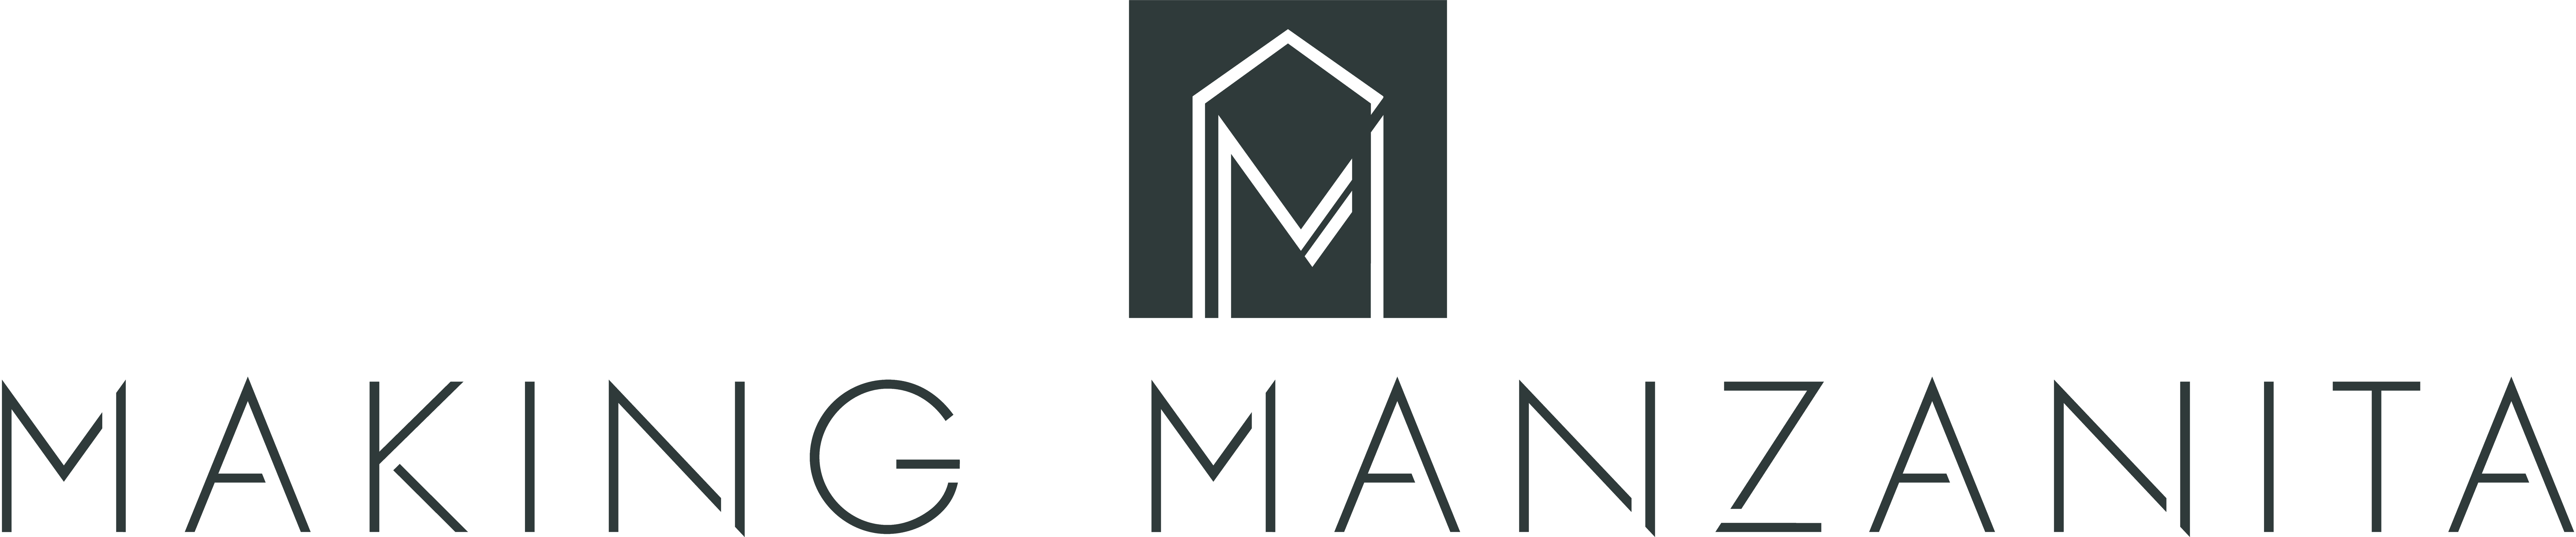 Making Manzanita logo